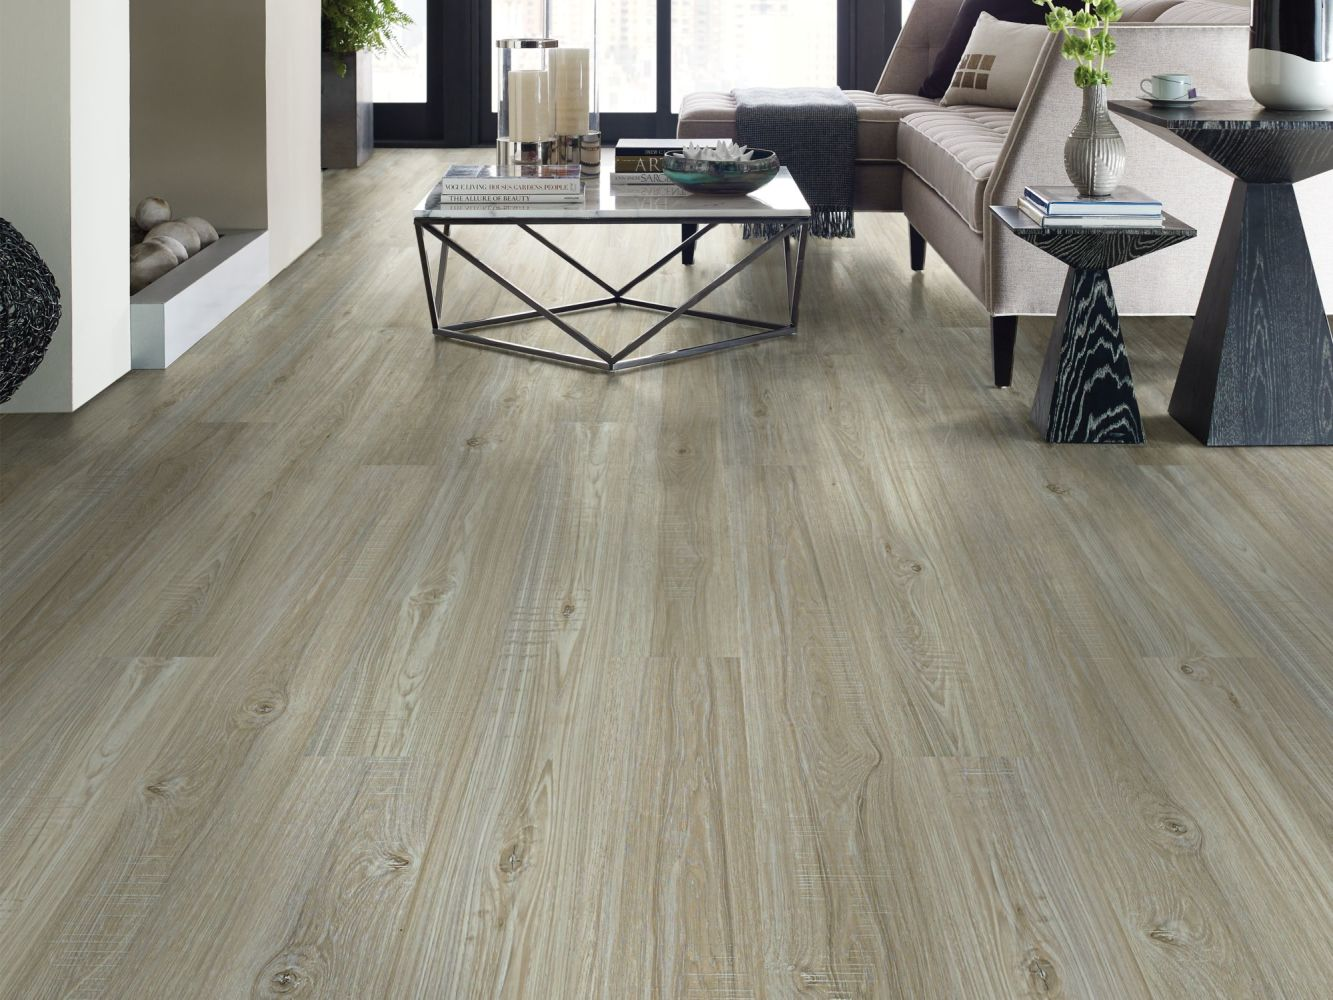 Shaw Floors Resilient Residential Impact Plus Washed Oak 00509_2031V